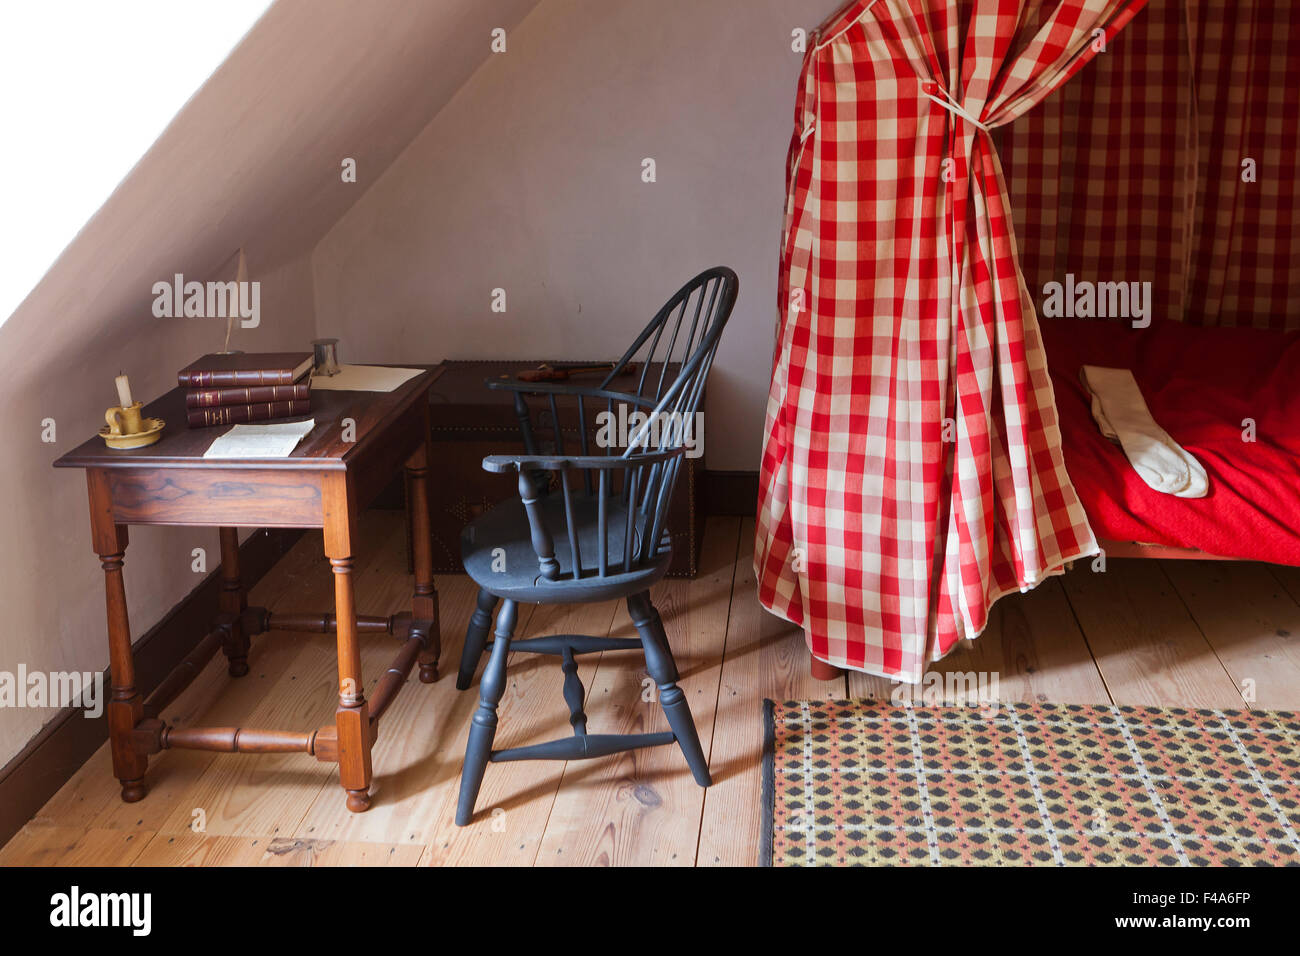 Desk in 18th century style loft bedroom - Alexandria, Virginia USA - Stock Image